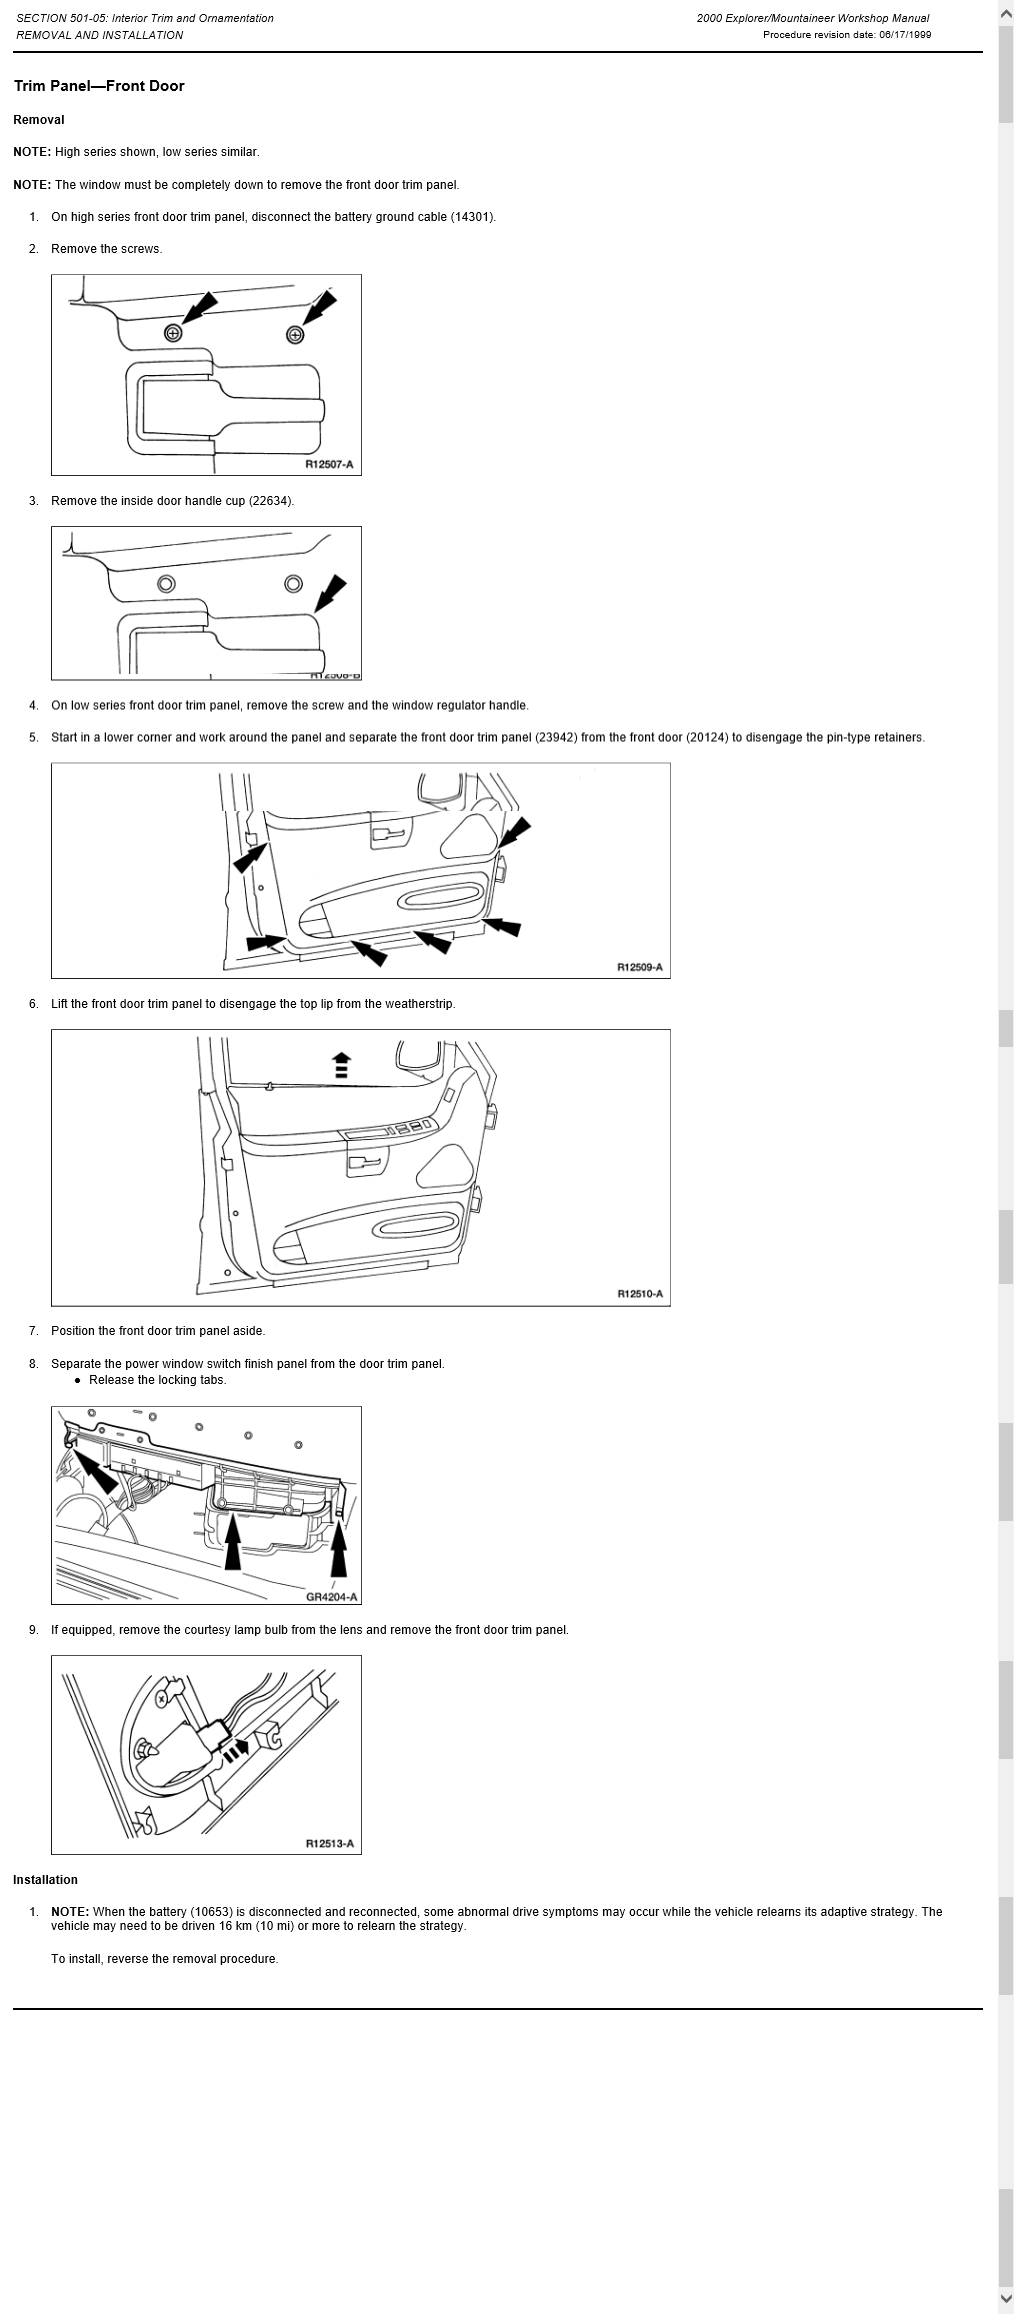 e4493c10-1c39-4abf-8ab0-3980367dcba6_door panel removal.png